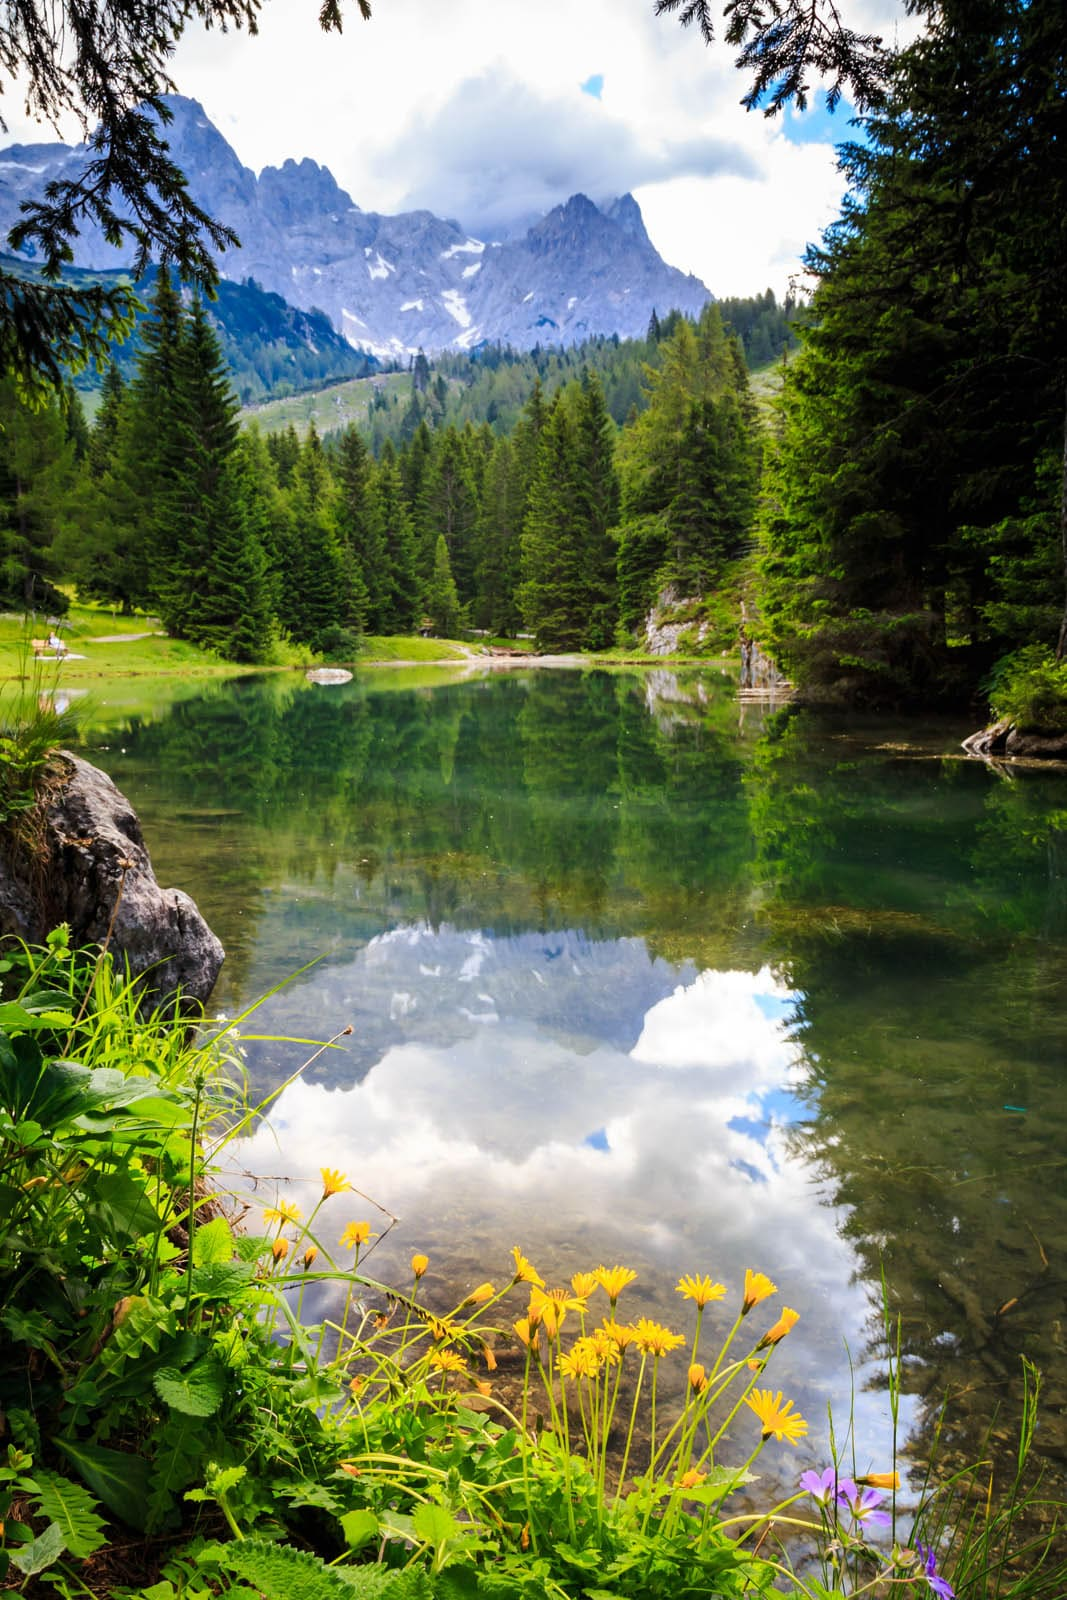 Hiking tours in Austria